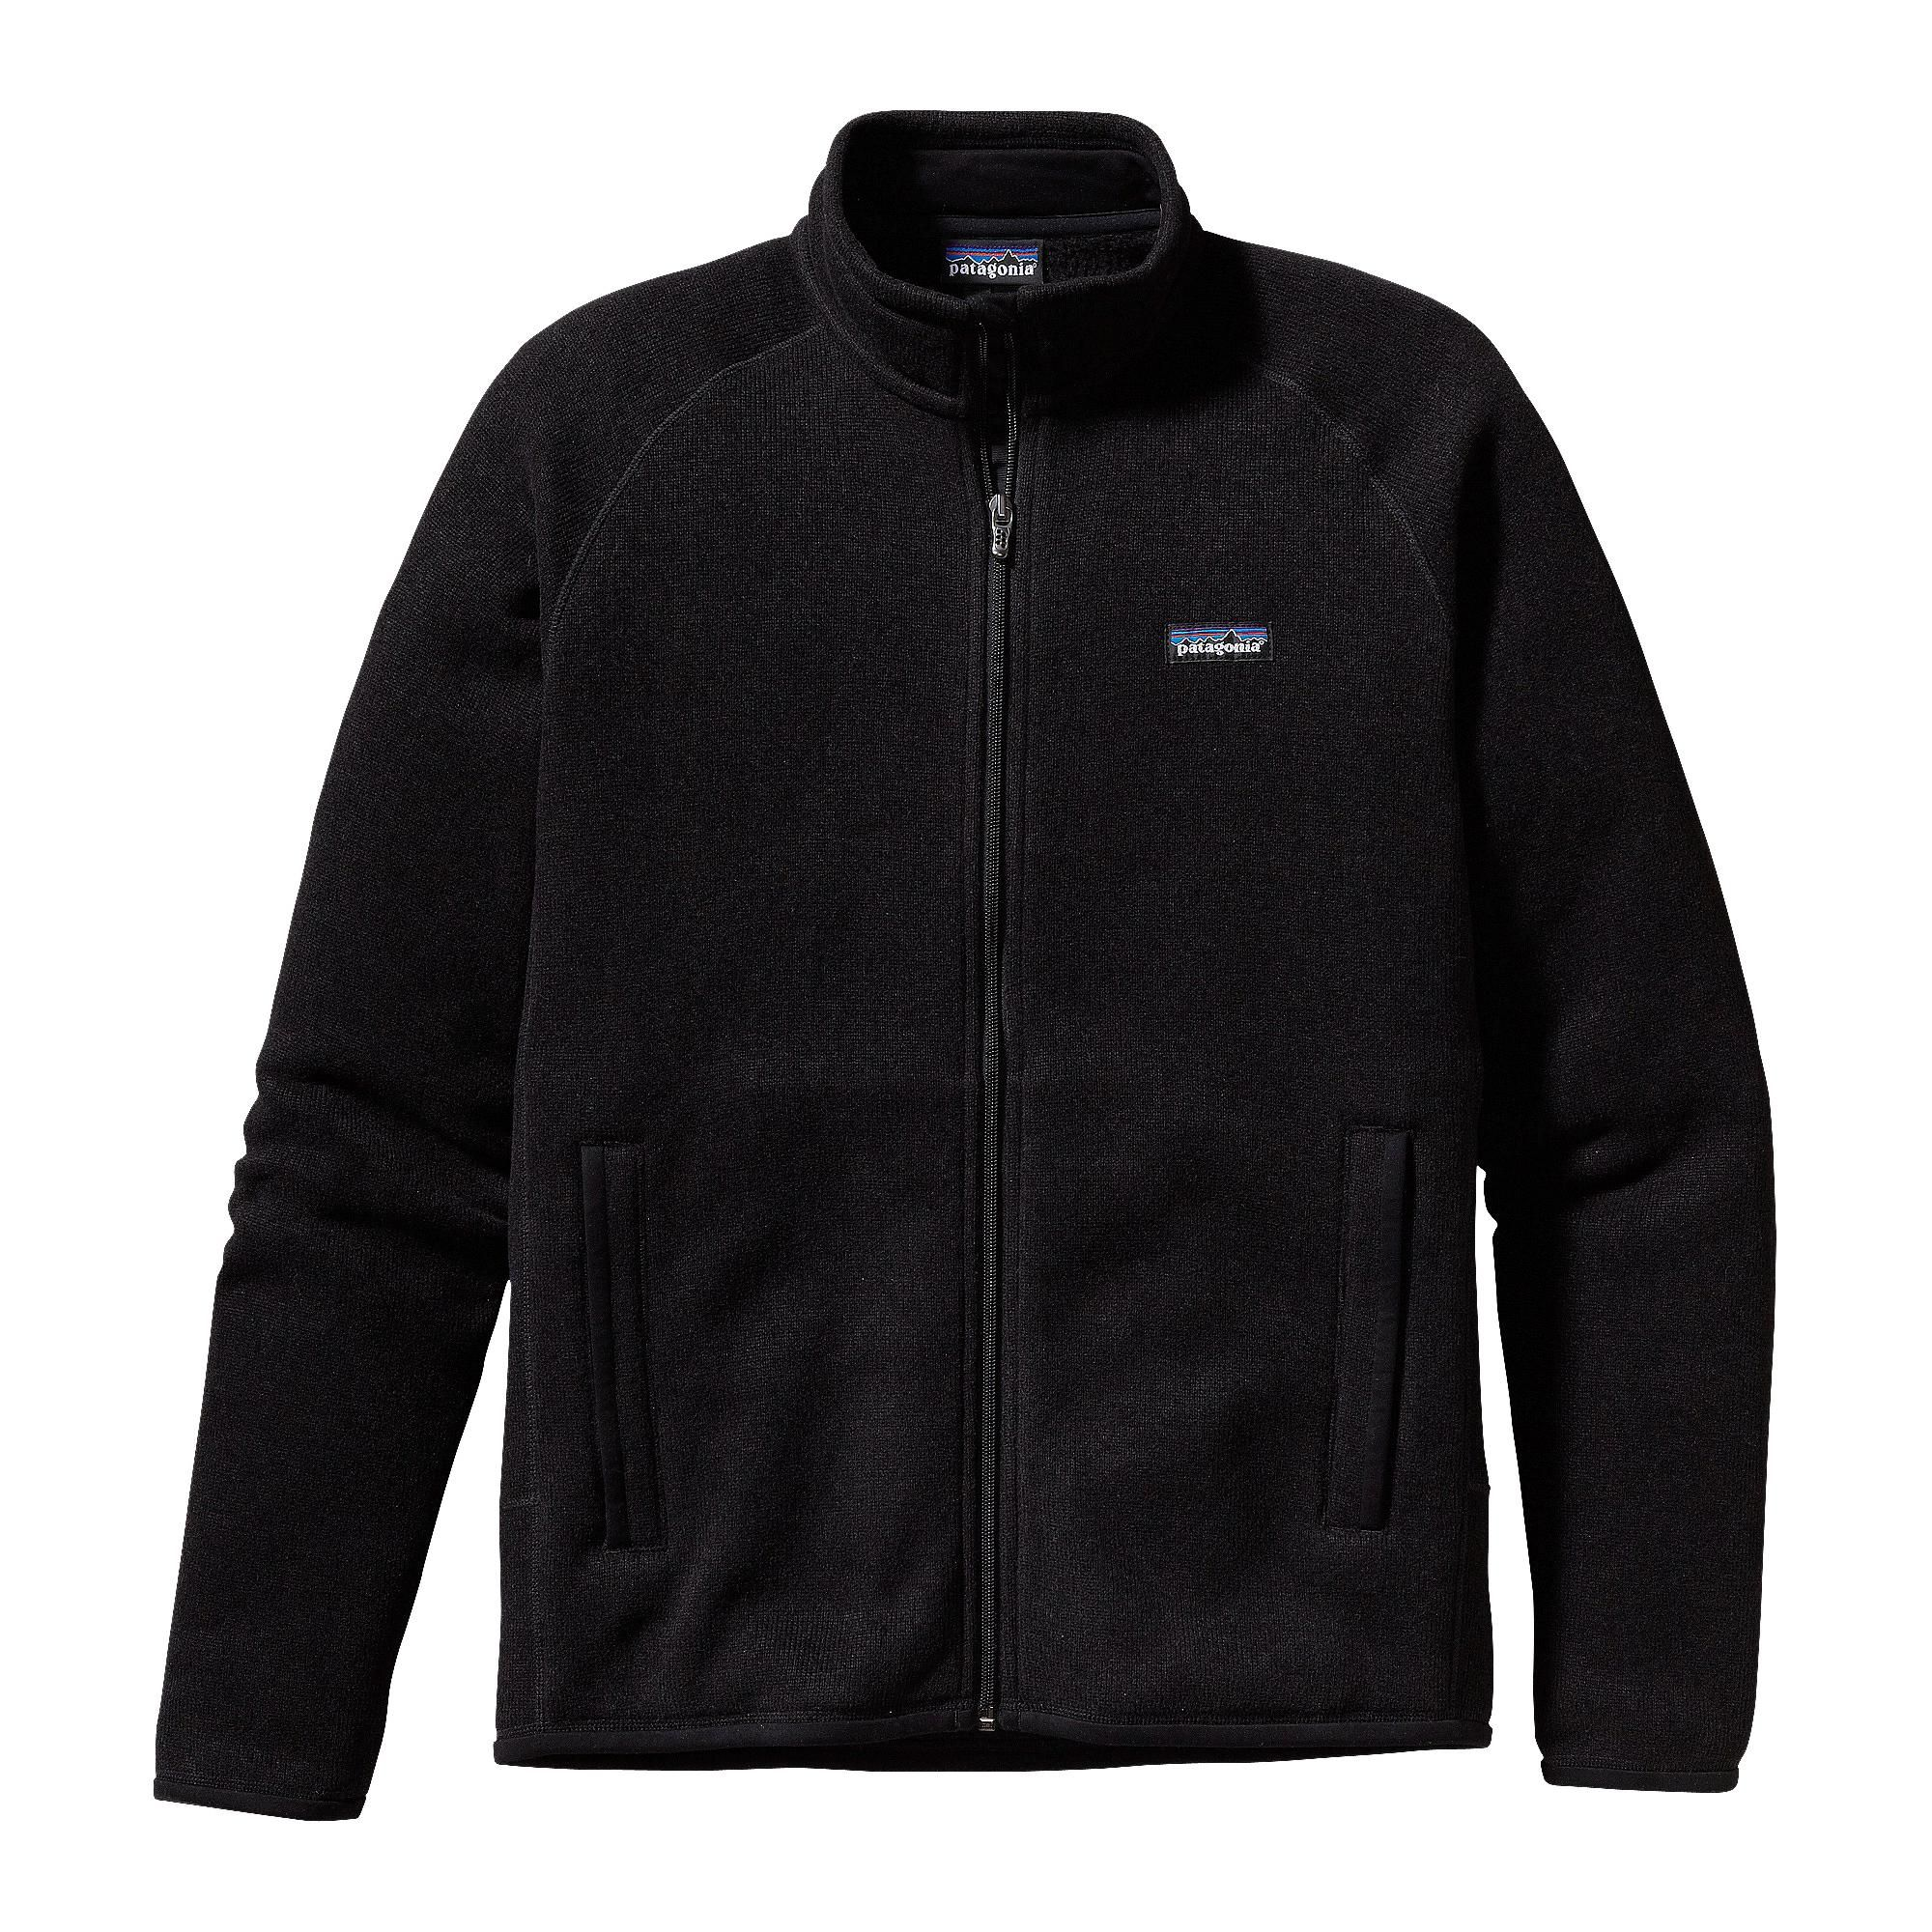 Patagonia Men's Better Sweater Jacket - A soft, full-zip polyester fleece  jacket that